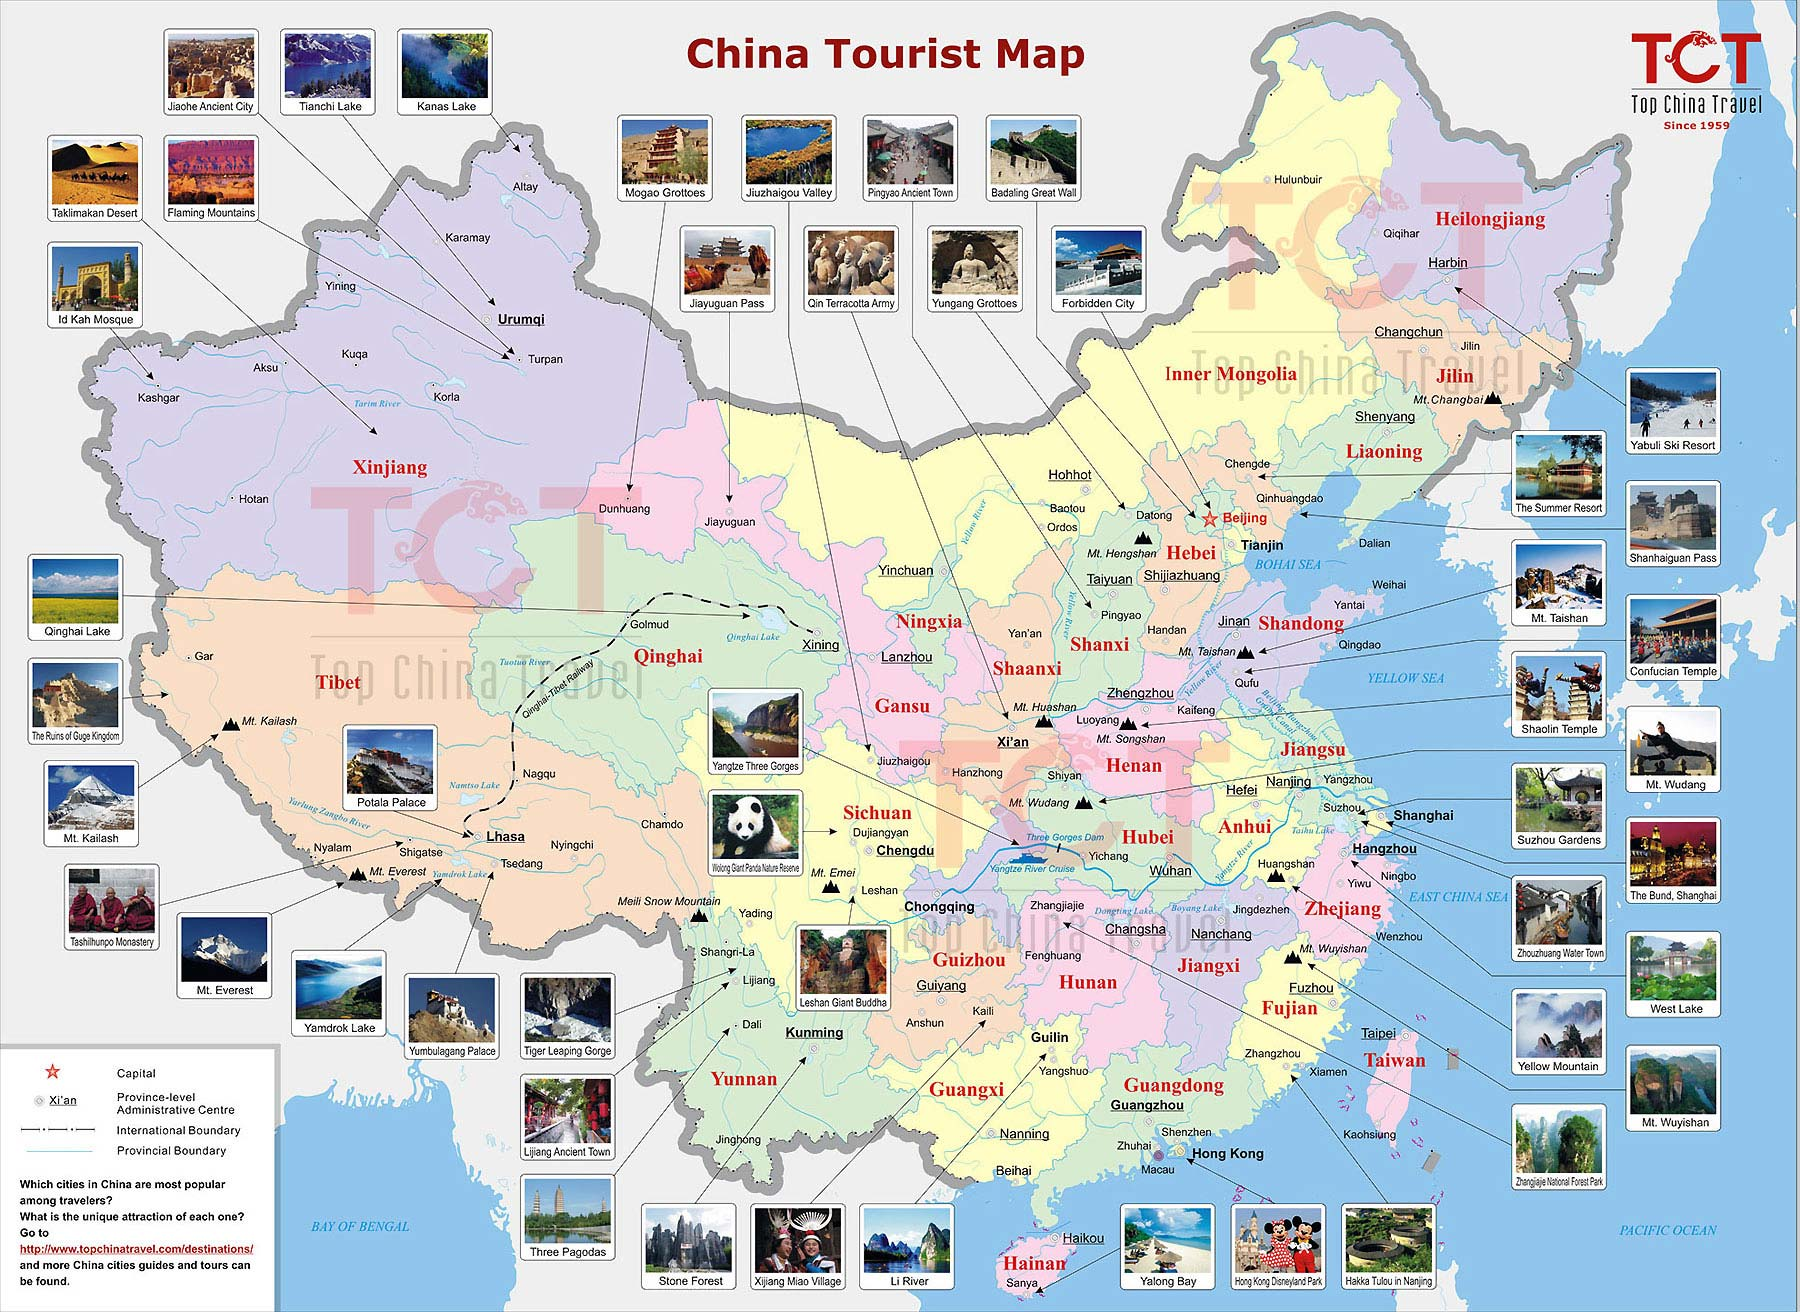 China Tourist Map, Tourist Map of China, China Travel Map